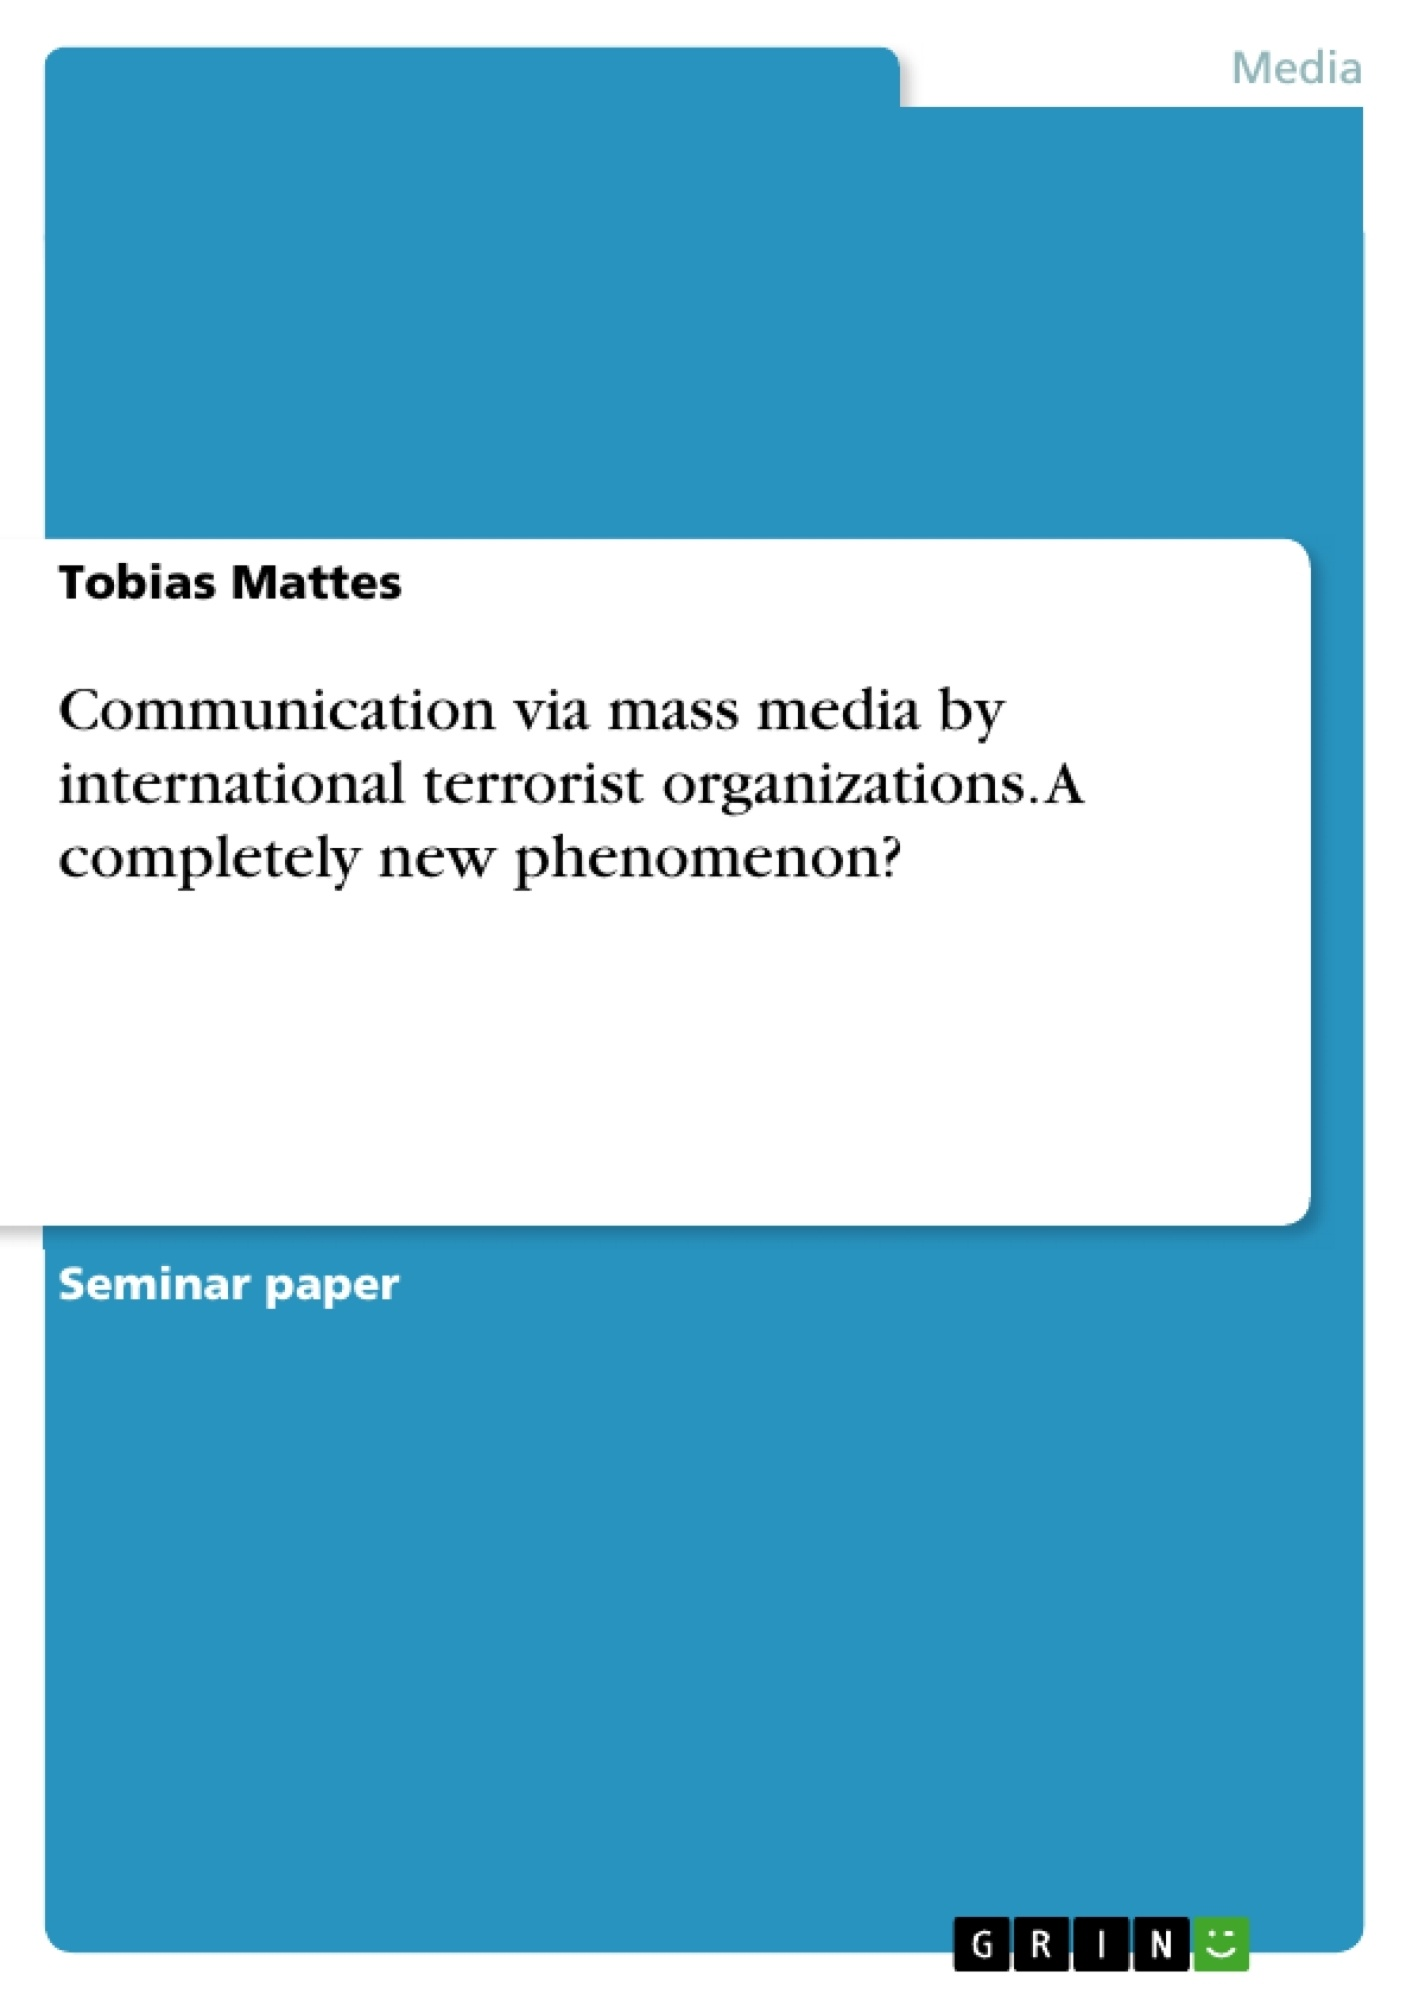 Title: Communication via mass media by international terrorist organizations. A completely new phenomenon?